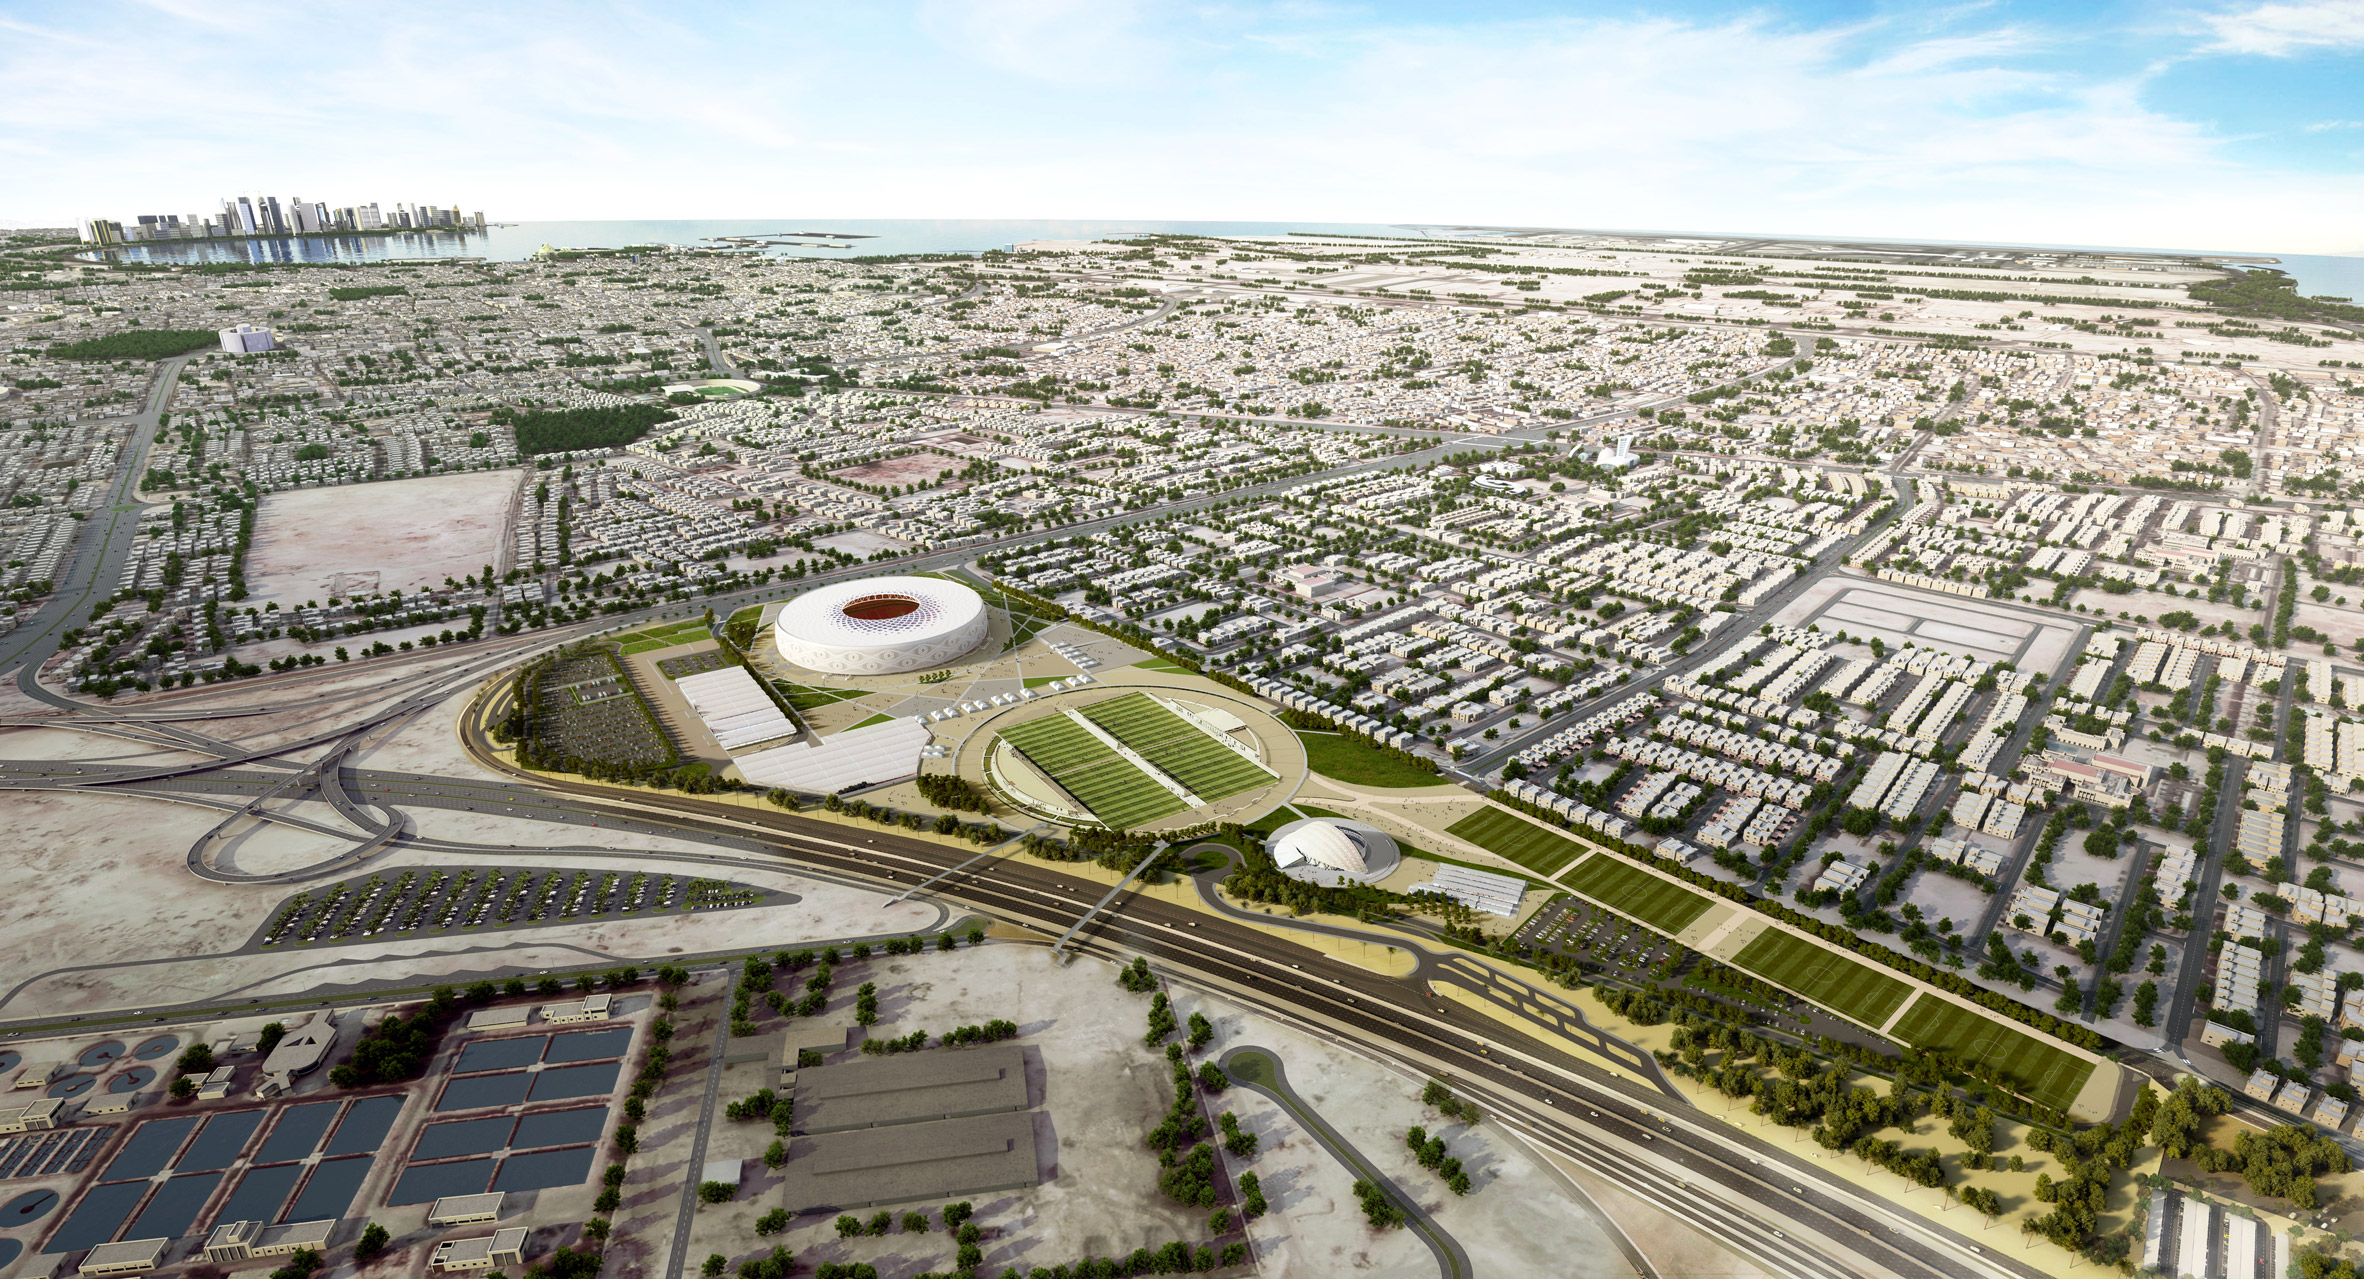 Ibrahim Jaidah unveils cap-inspired stadium for Qatar 2022 FIFA World Cup